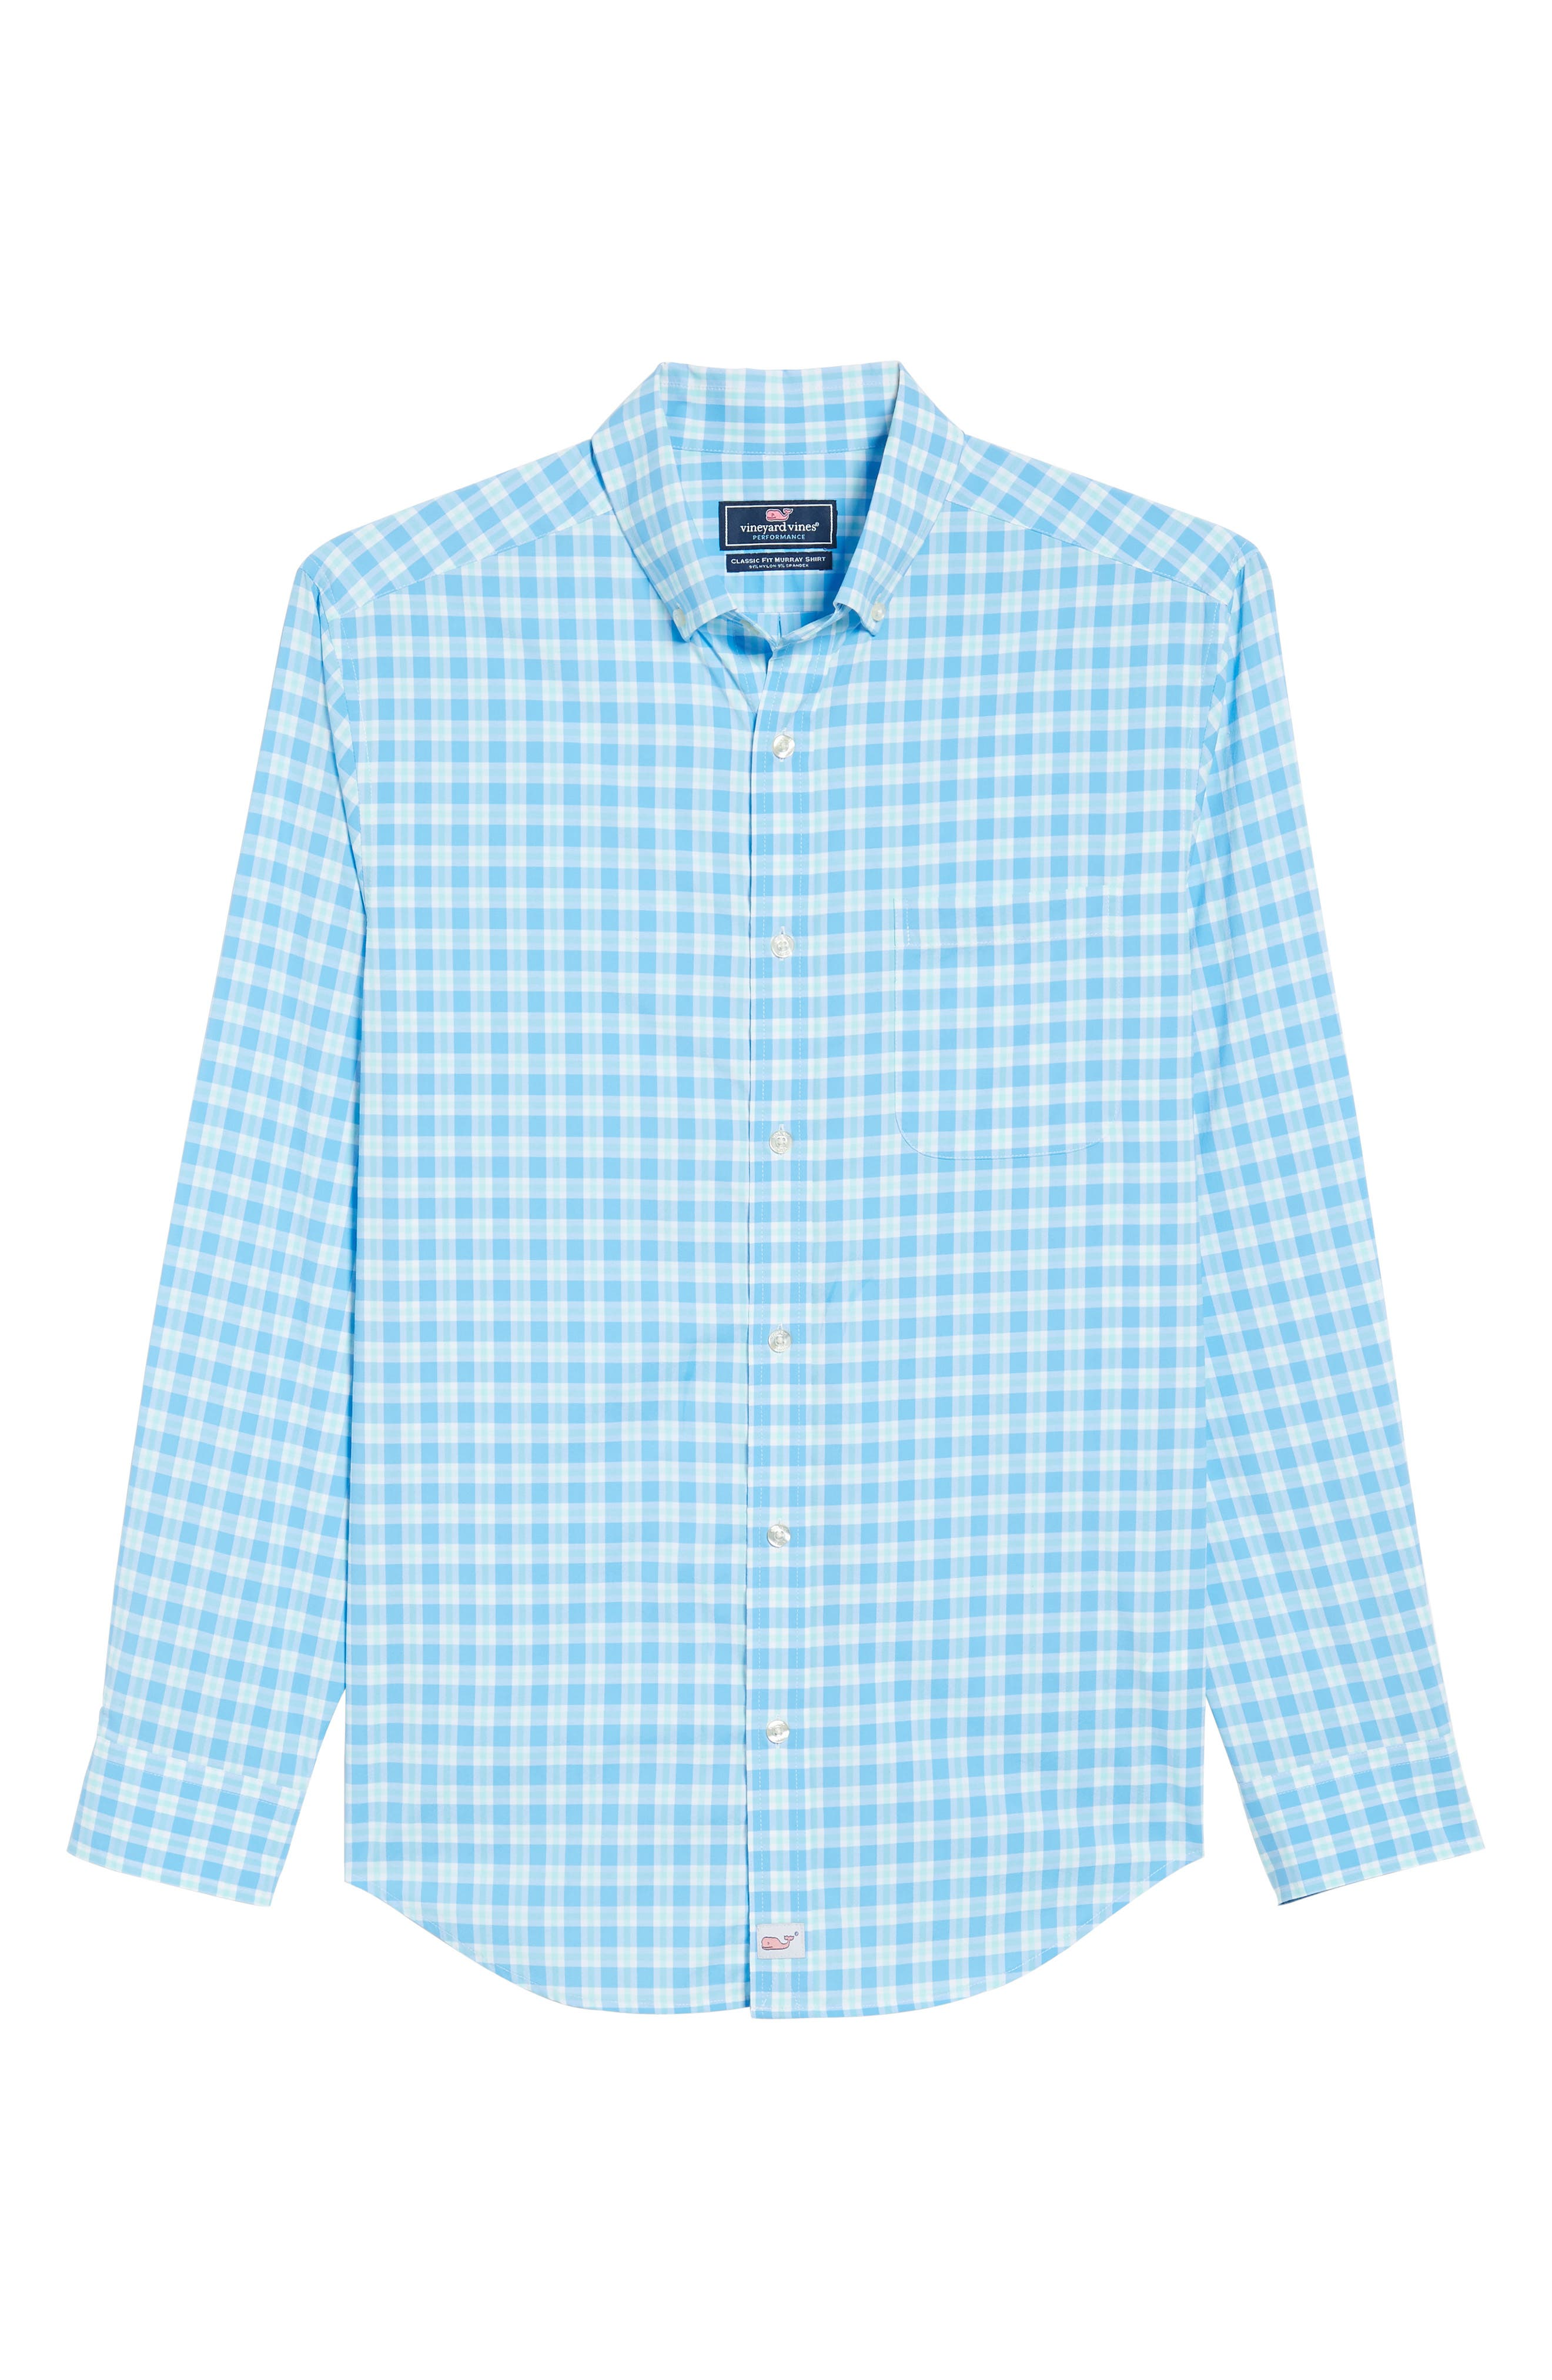 Ocean Beach Classic Fit Stretch Check Sport Shirt,                             Alternate thumbnail 6, color,                             484